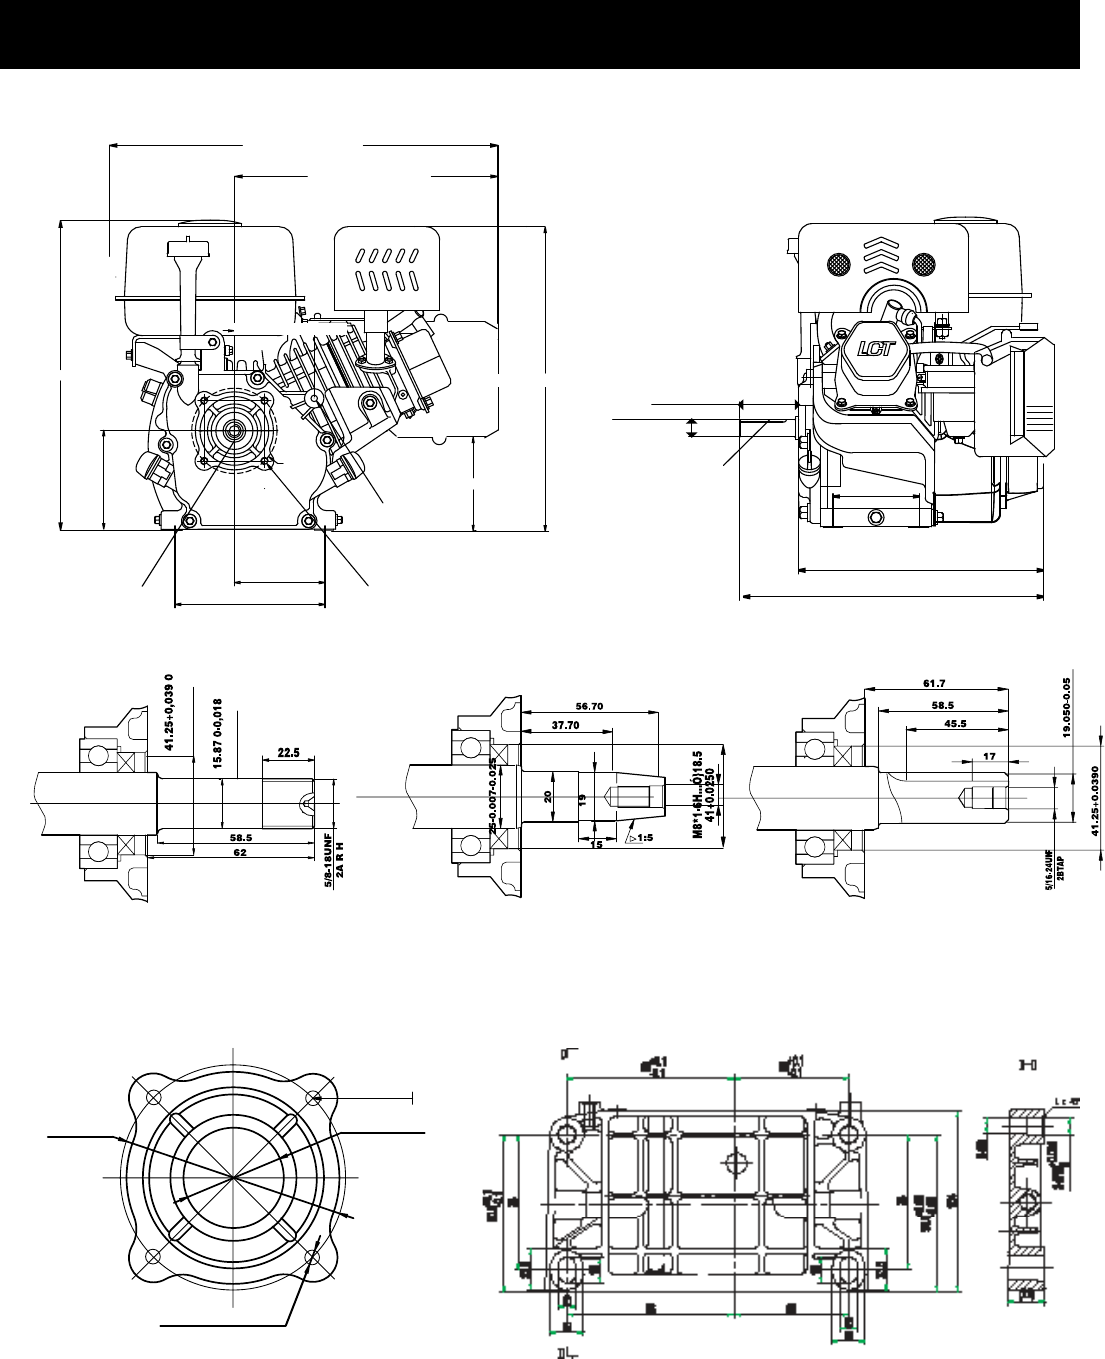 mc_7186] lct engine wiring diagram download diagram  proe ratag vira mohammedshrine librar wiring 101